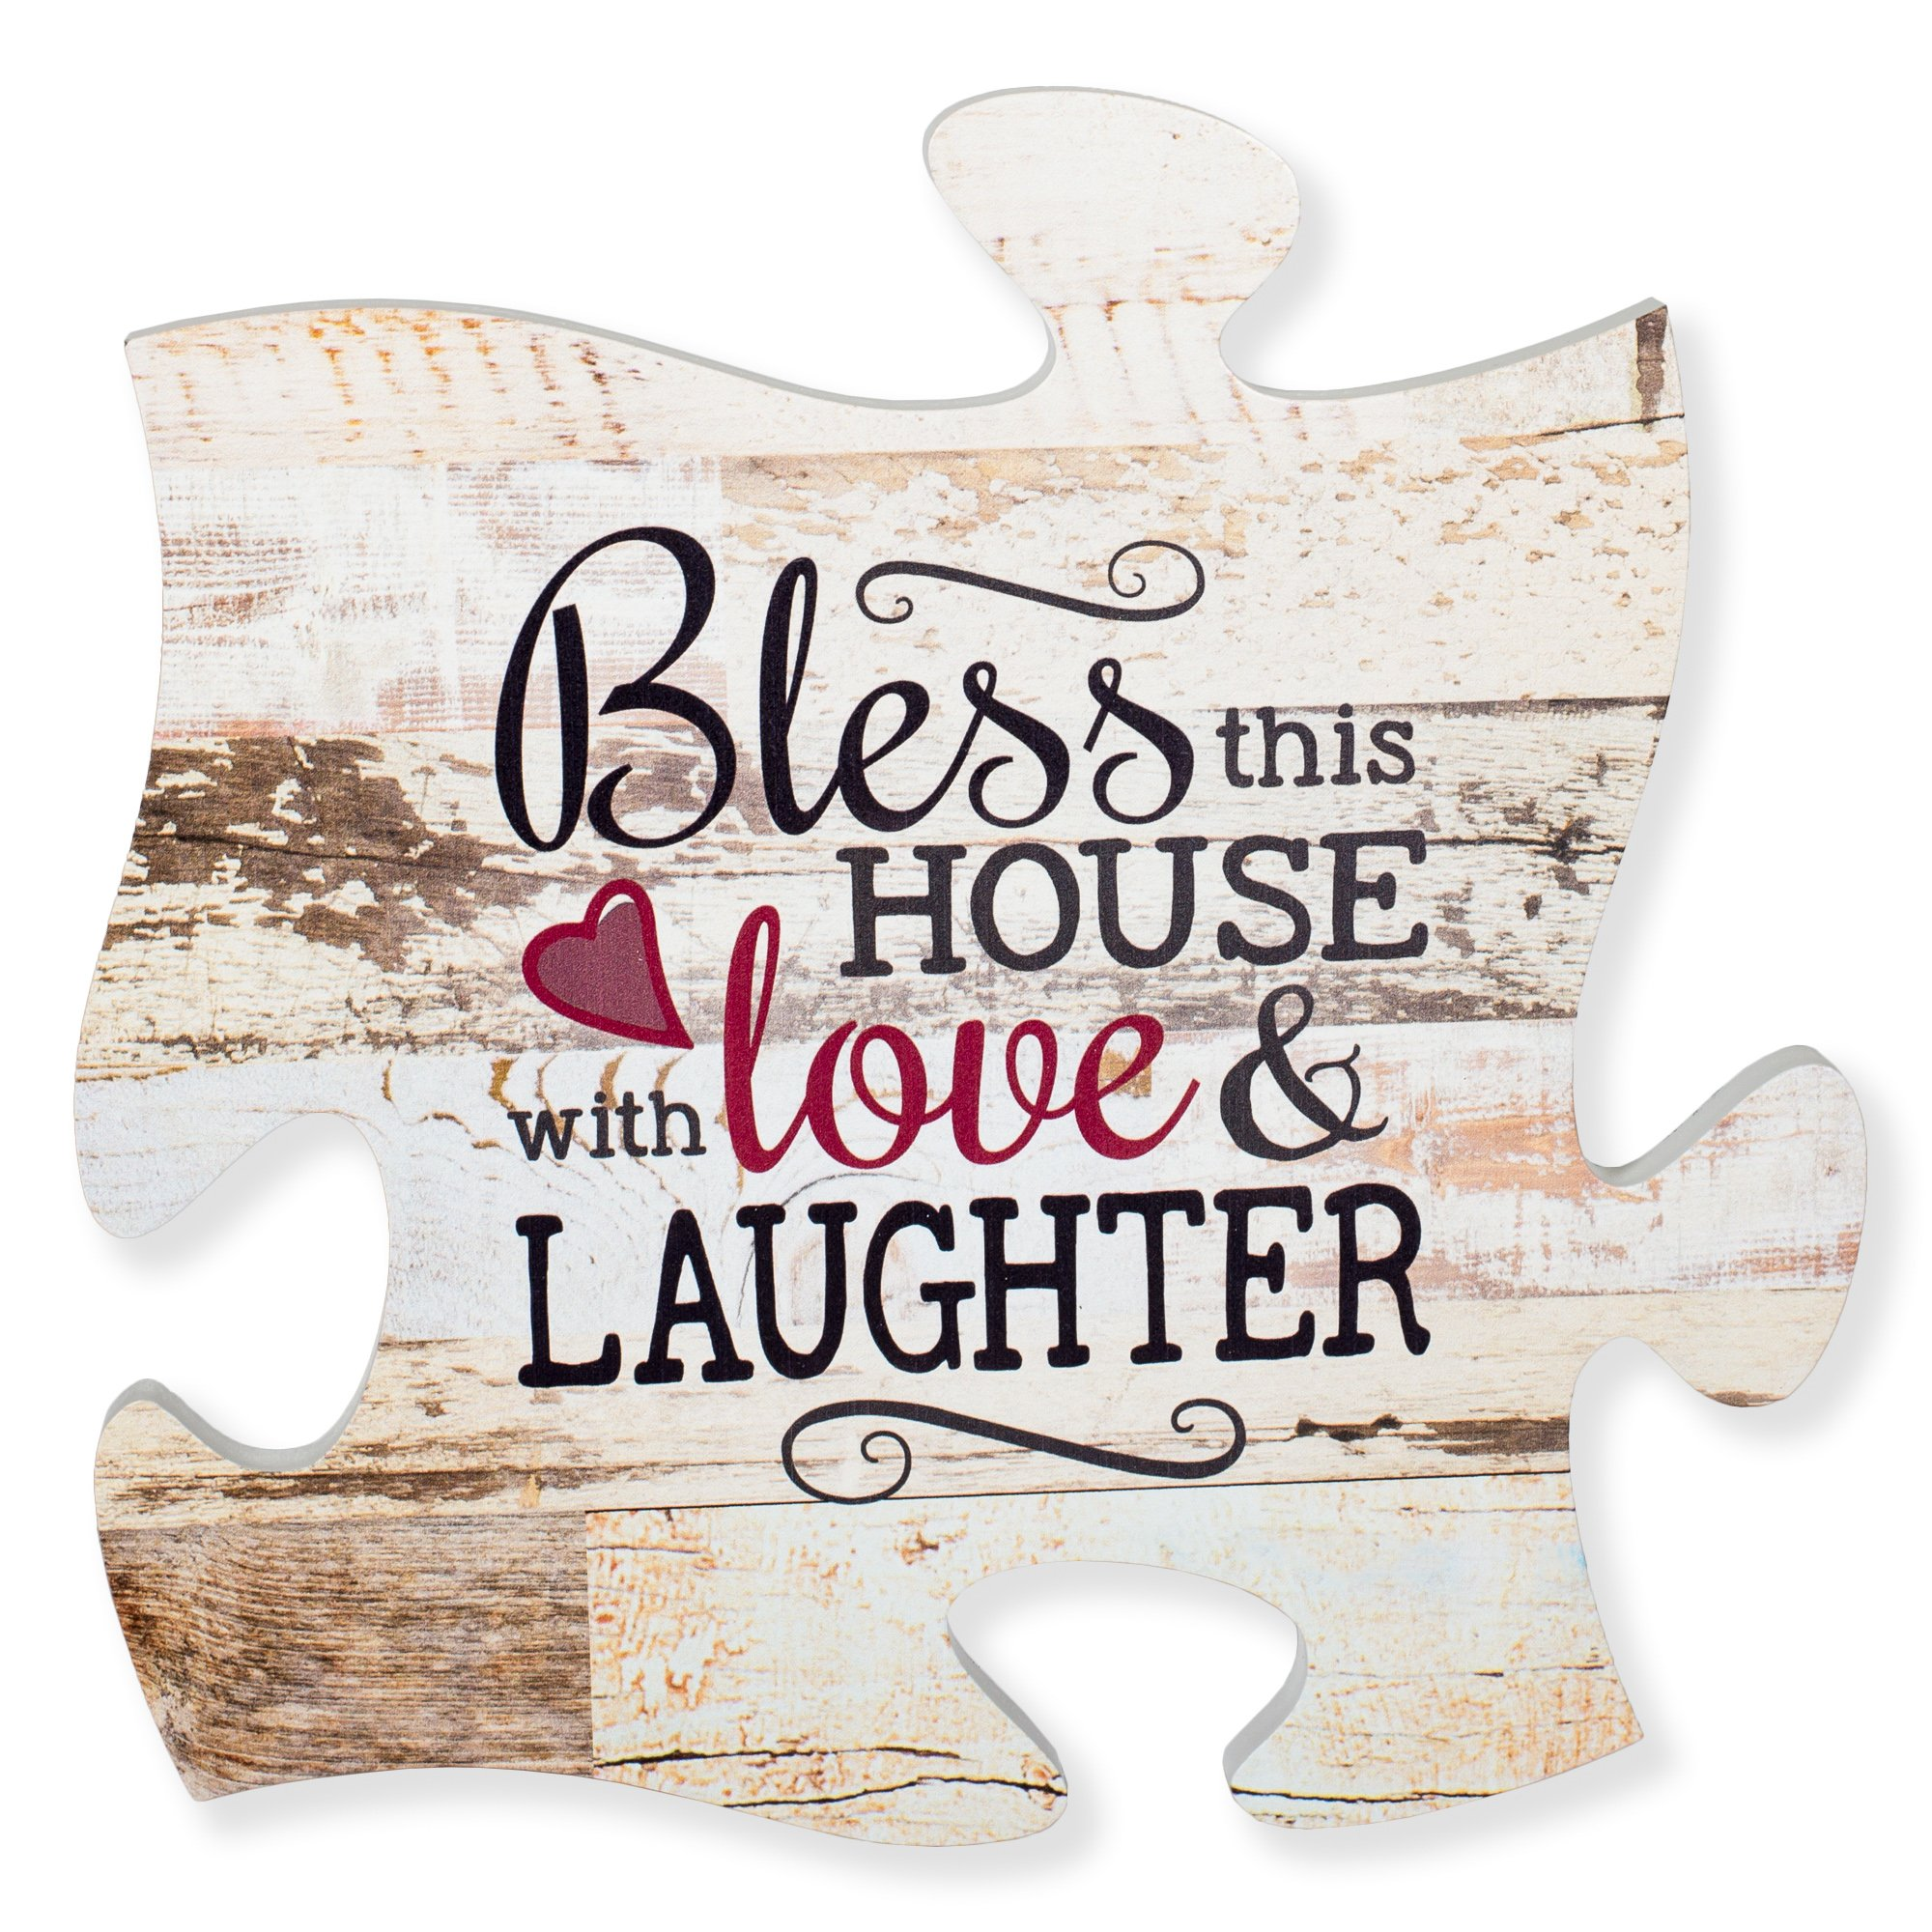 P Graham Dunn Bless This House with Love & Laughter Distressed 12 x 12 Wood Wall Art Puzzle Piece Plaque